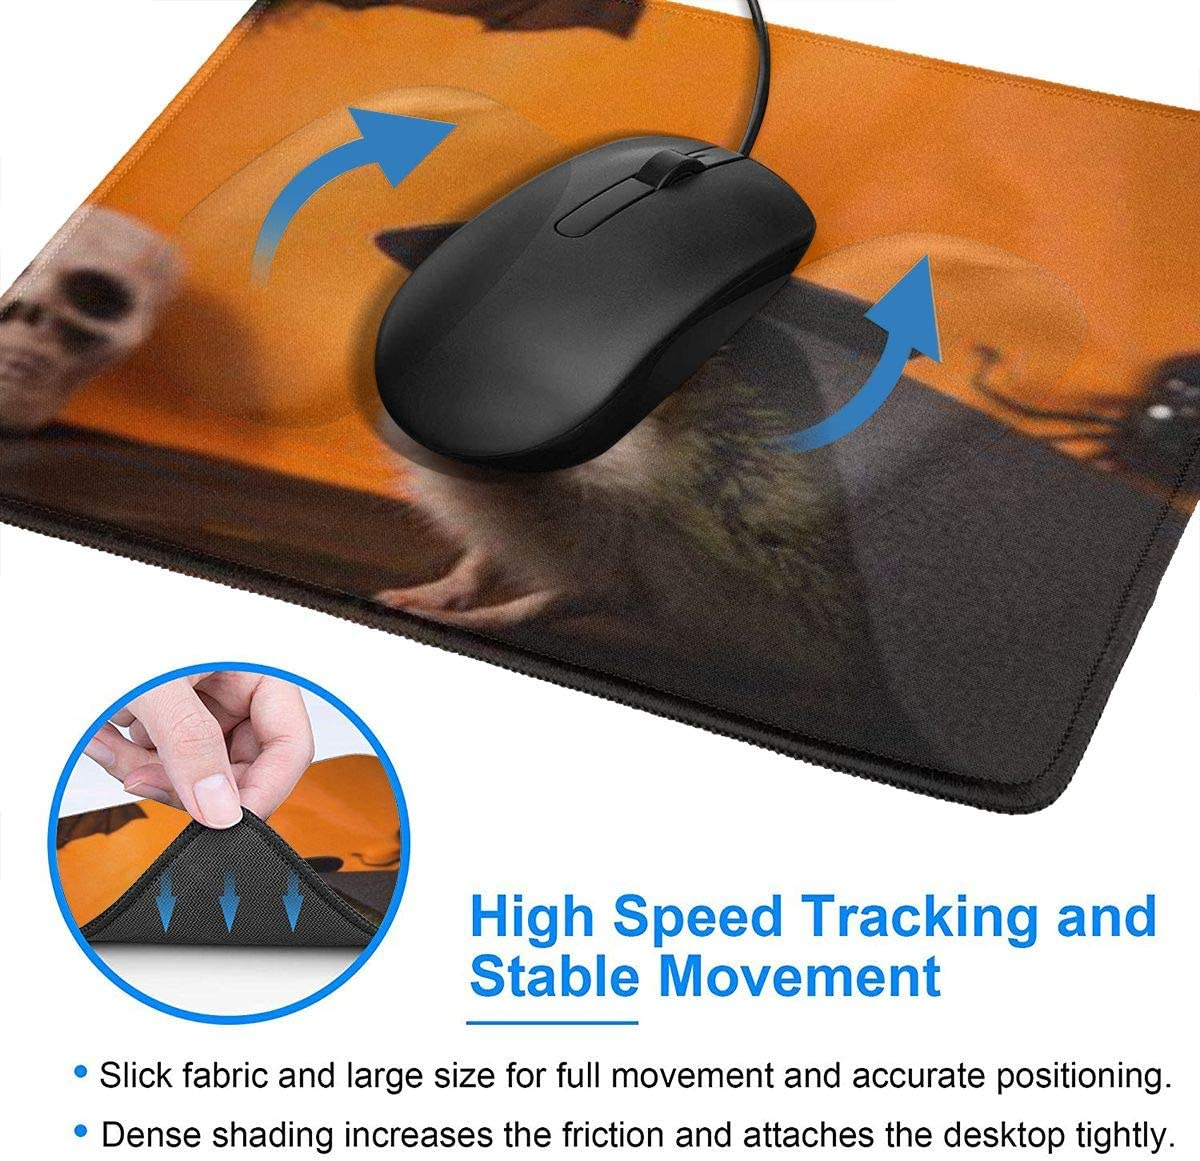 Mouse Pad Personality Halloween Hedgehog Pattern Mousepad Non-Slip Rubber Gaming Mouse Pad Rectangle Mouse Pads for Computers Laptop 10x12inch